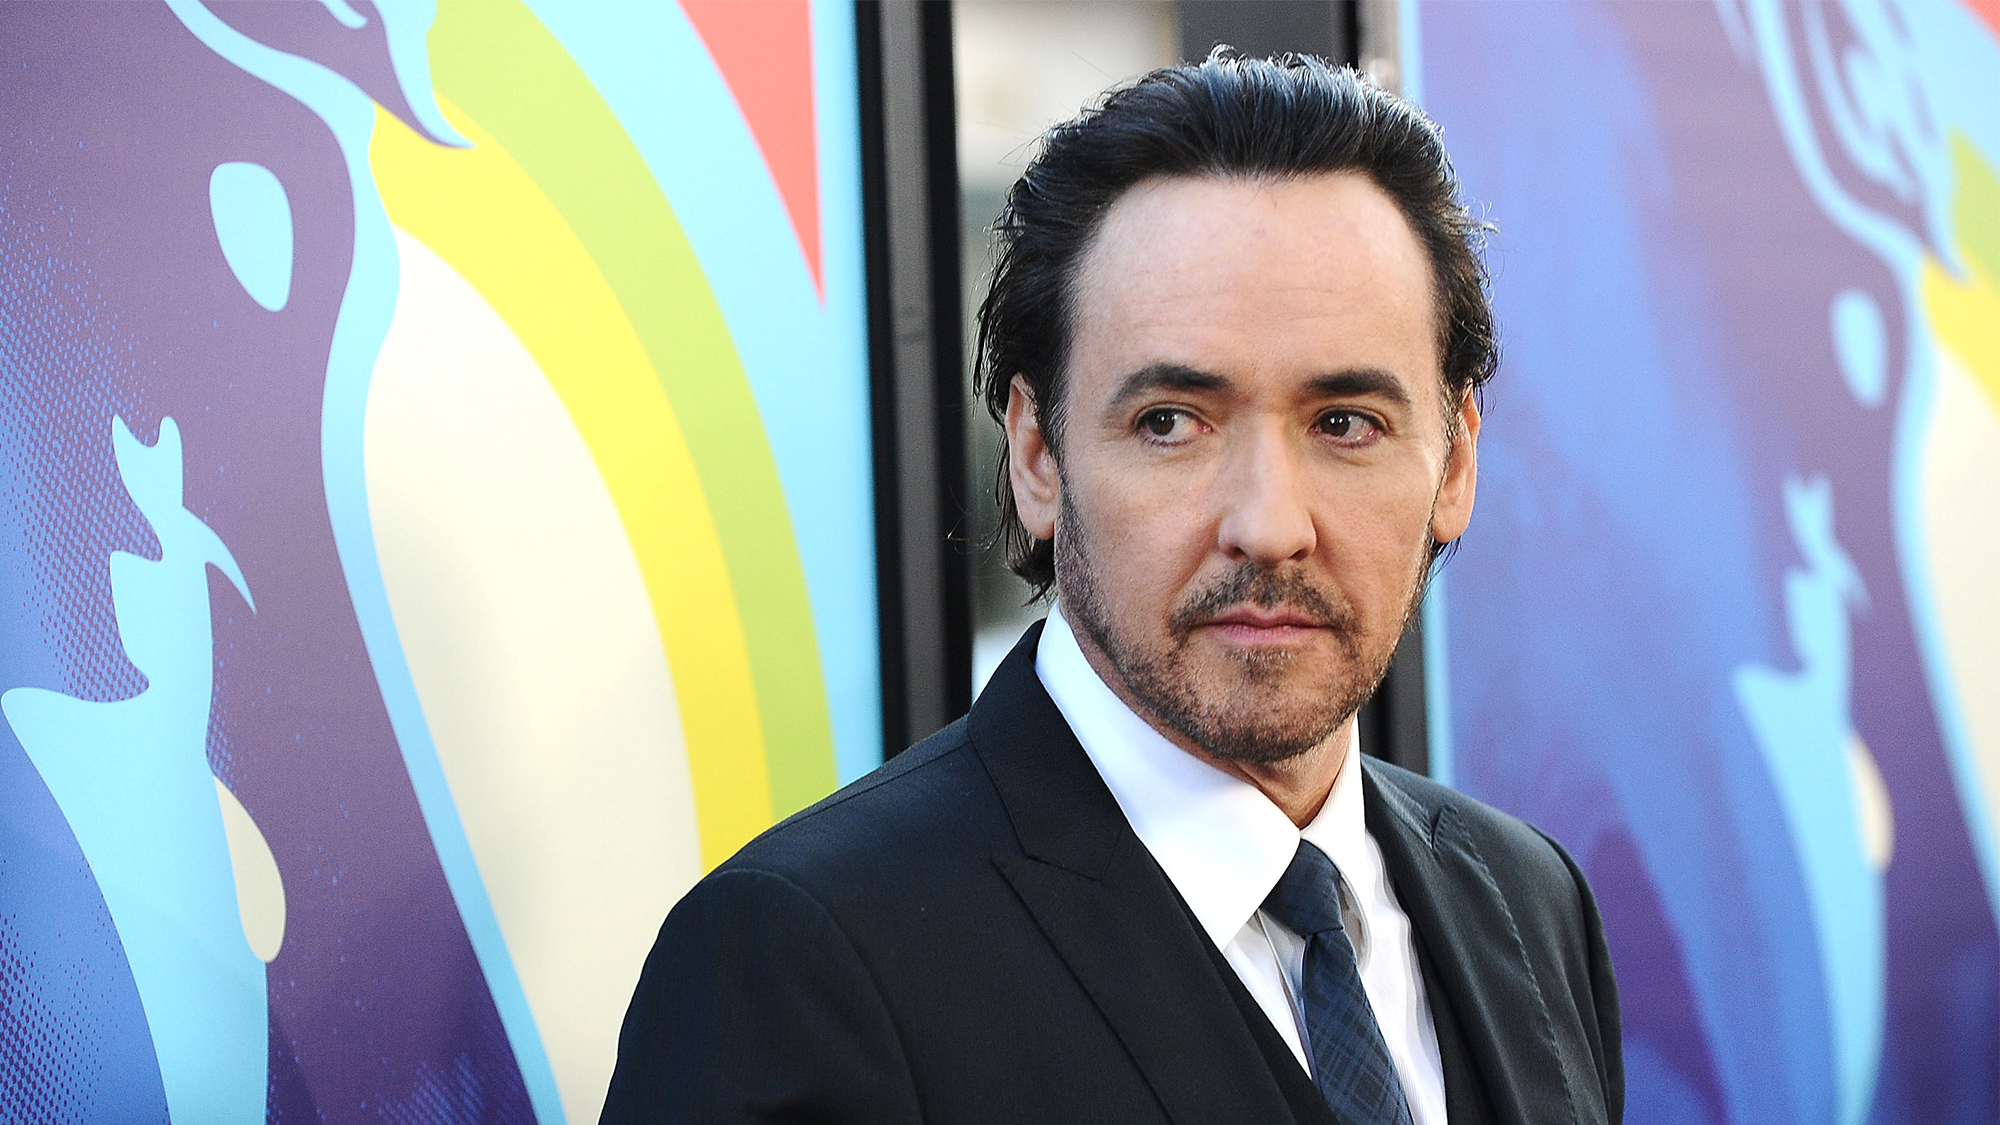 Actor John Cusack Lists His Malibu Beachfront Home for $13.5M